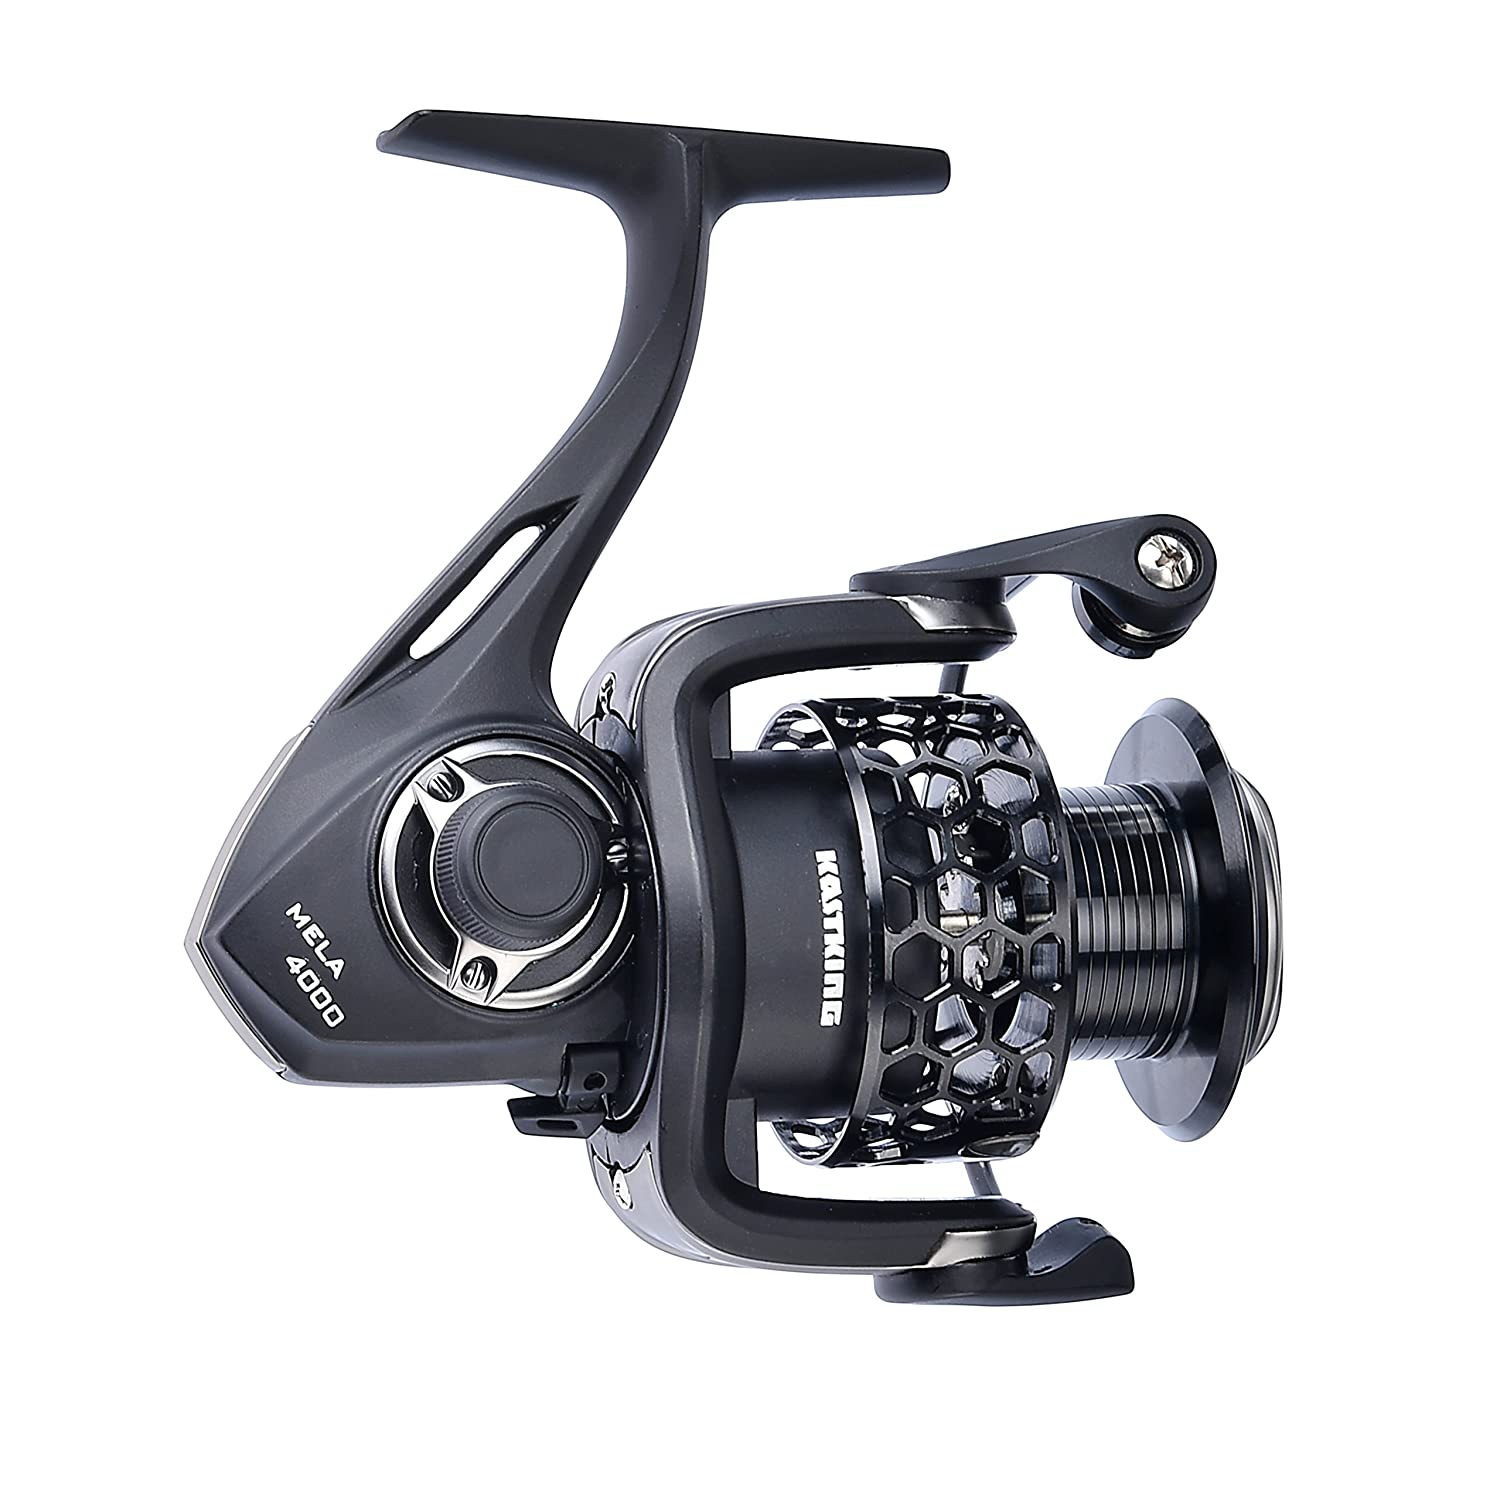 KastKing Mela Spinning Reel